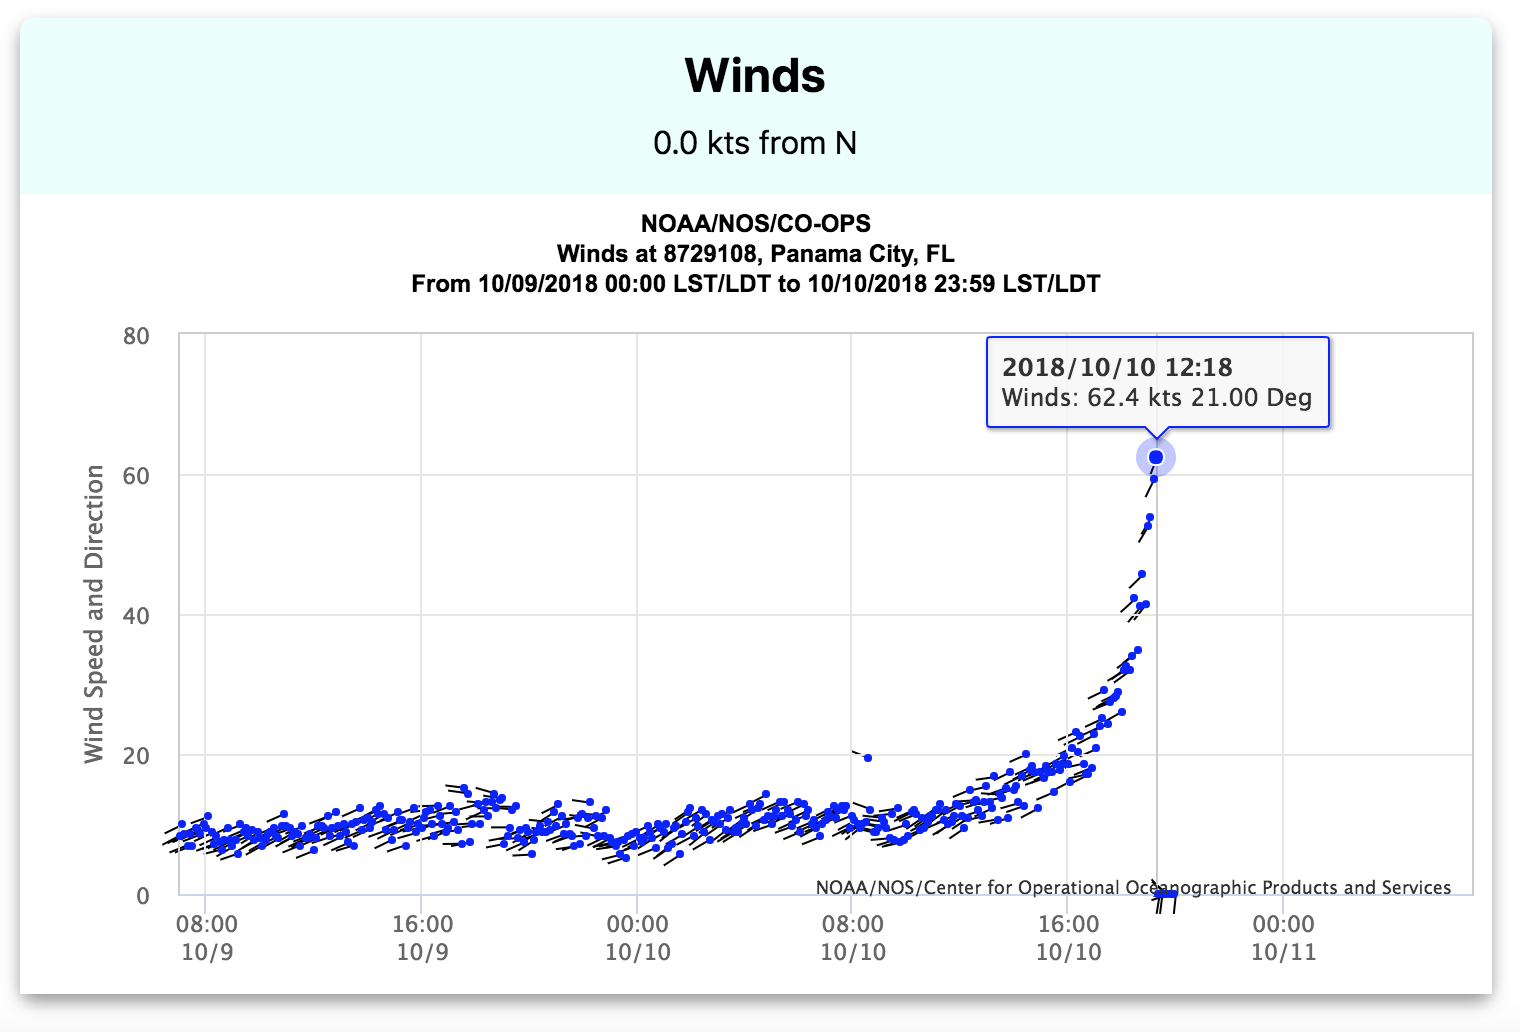 64 Knots 74 Mph Which Is When The Sensor In Panama City Decided It Had Enough And 54 62 So Even Though Winds Were Less